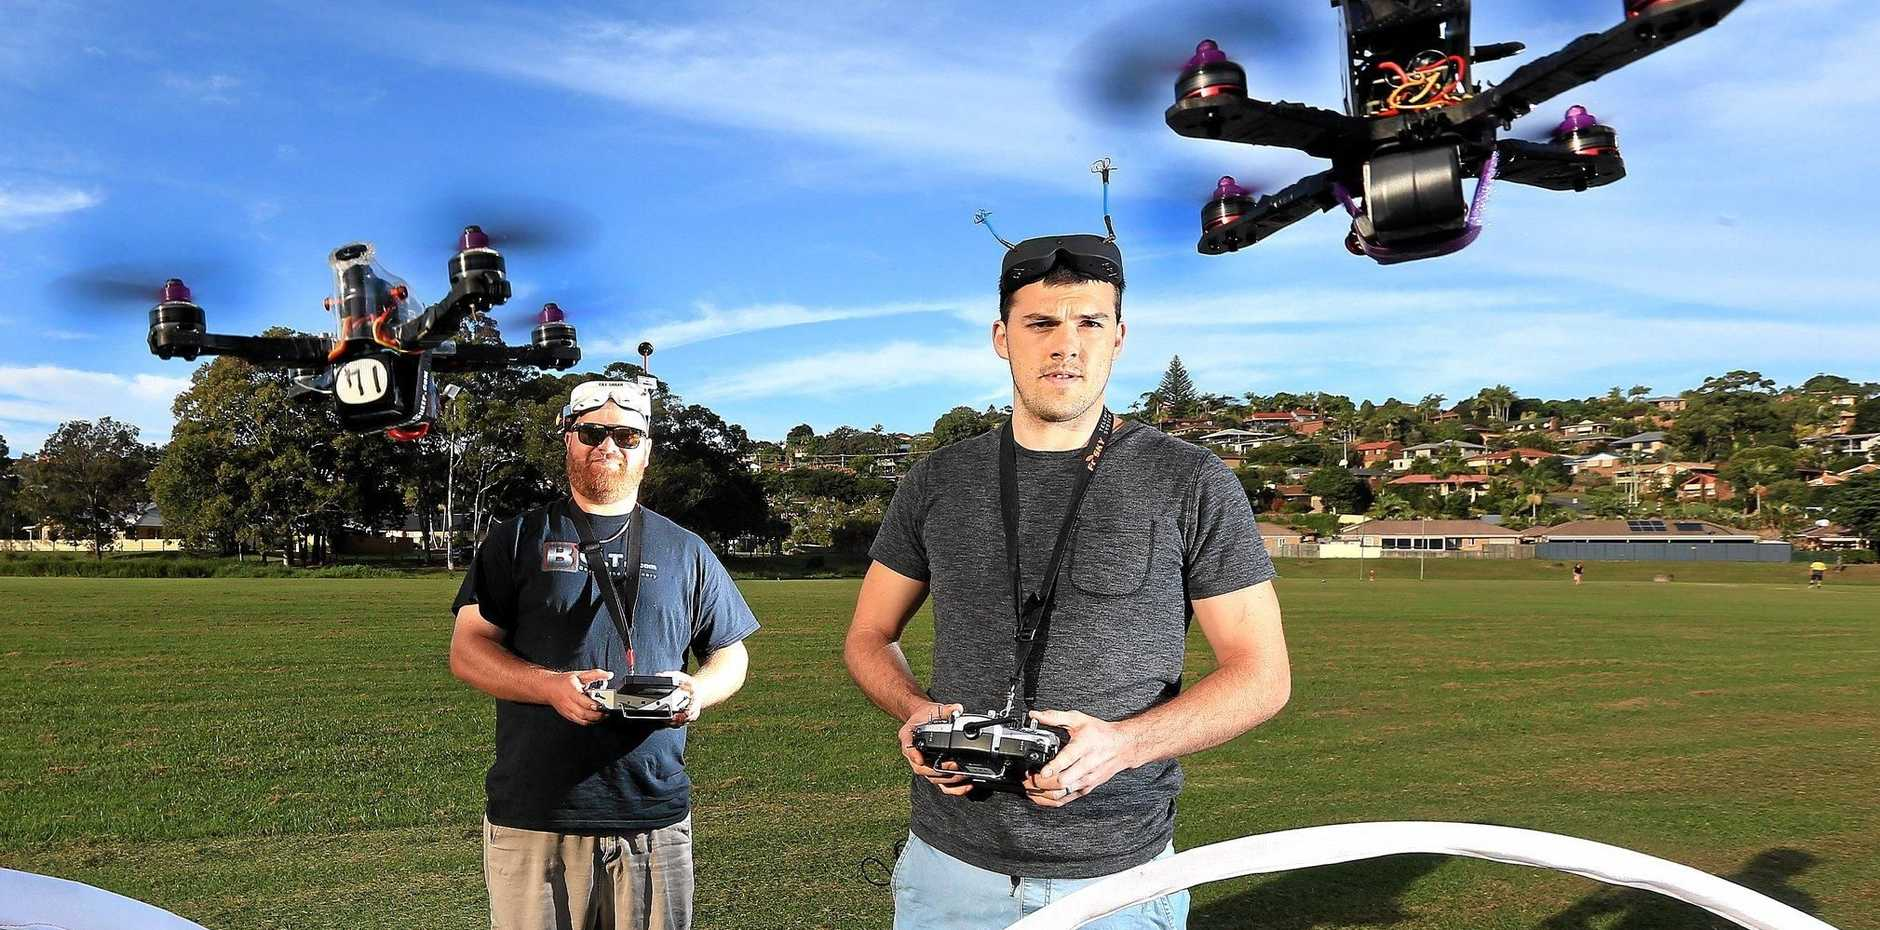 BOYS WITH TOYS: Tweed Coast champion drone racers, Ross Kerker and Jerome Partland get some practice in at Banora Point.